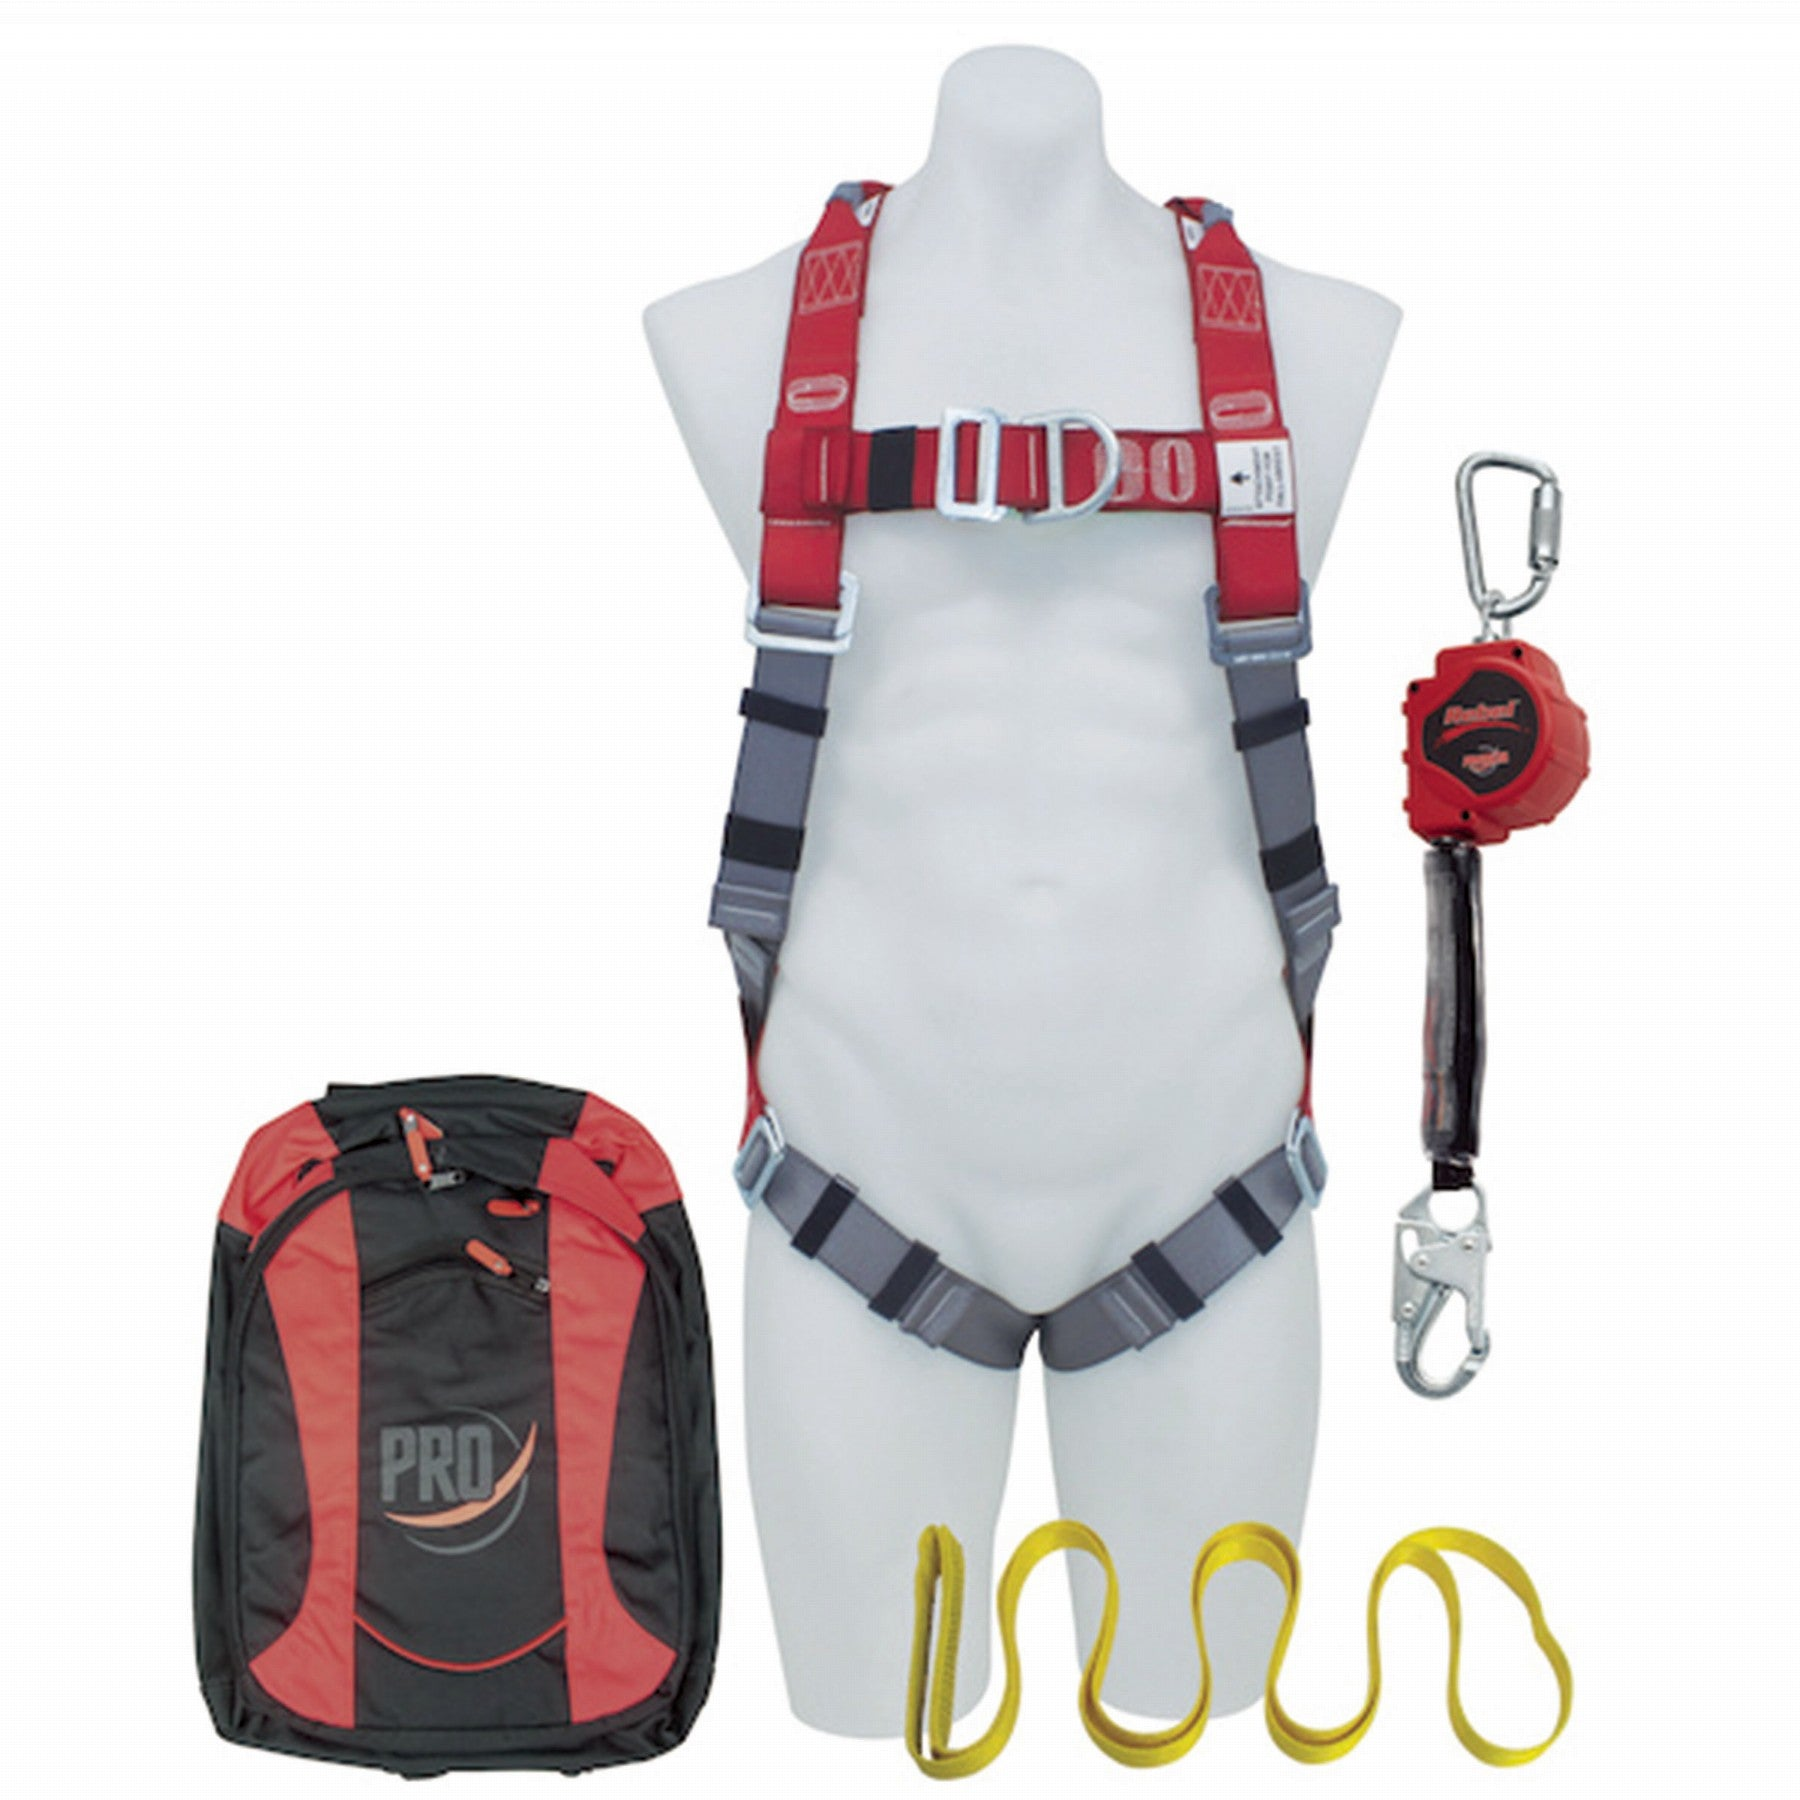 Protecta Fall Protection Kits - Construction Workers Kit